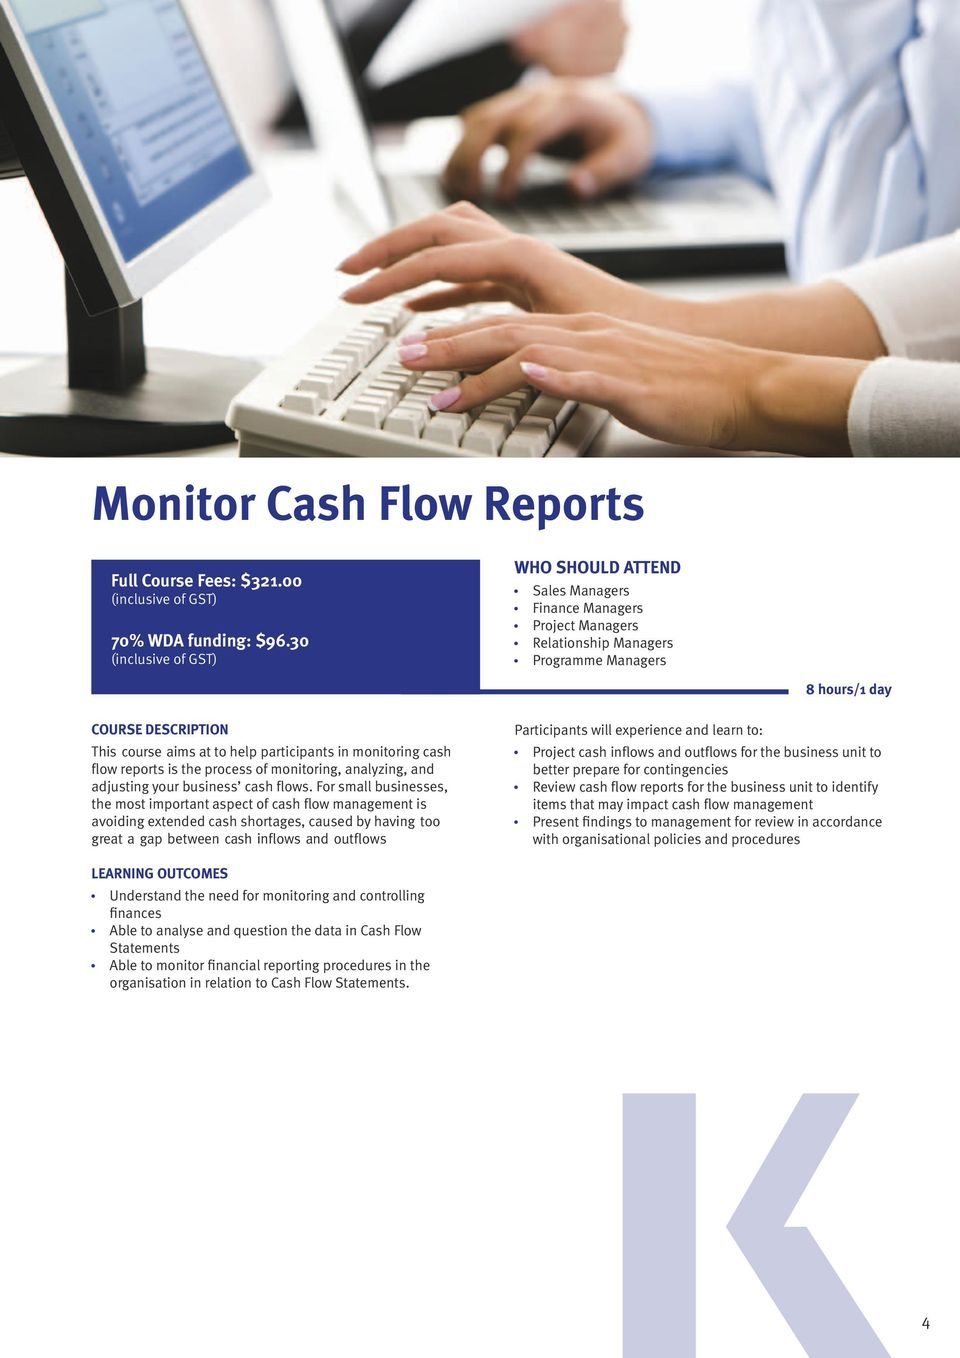 monitoring, analyzing, and adjusting your business cash flows.